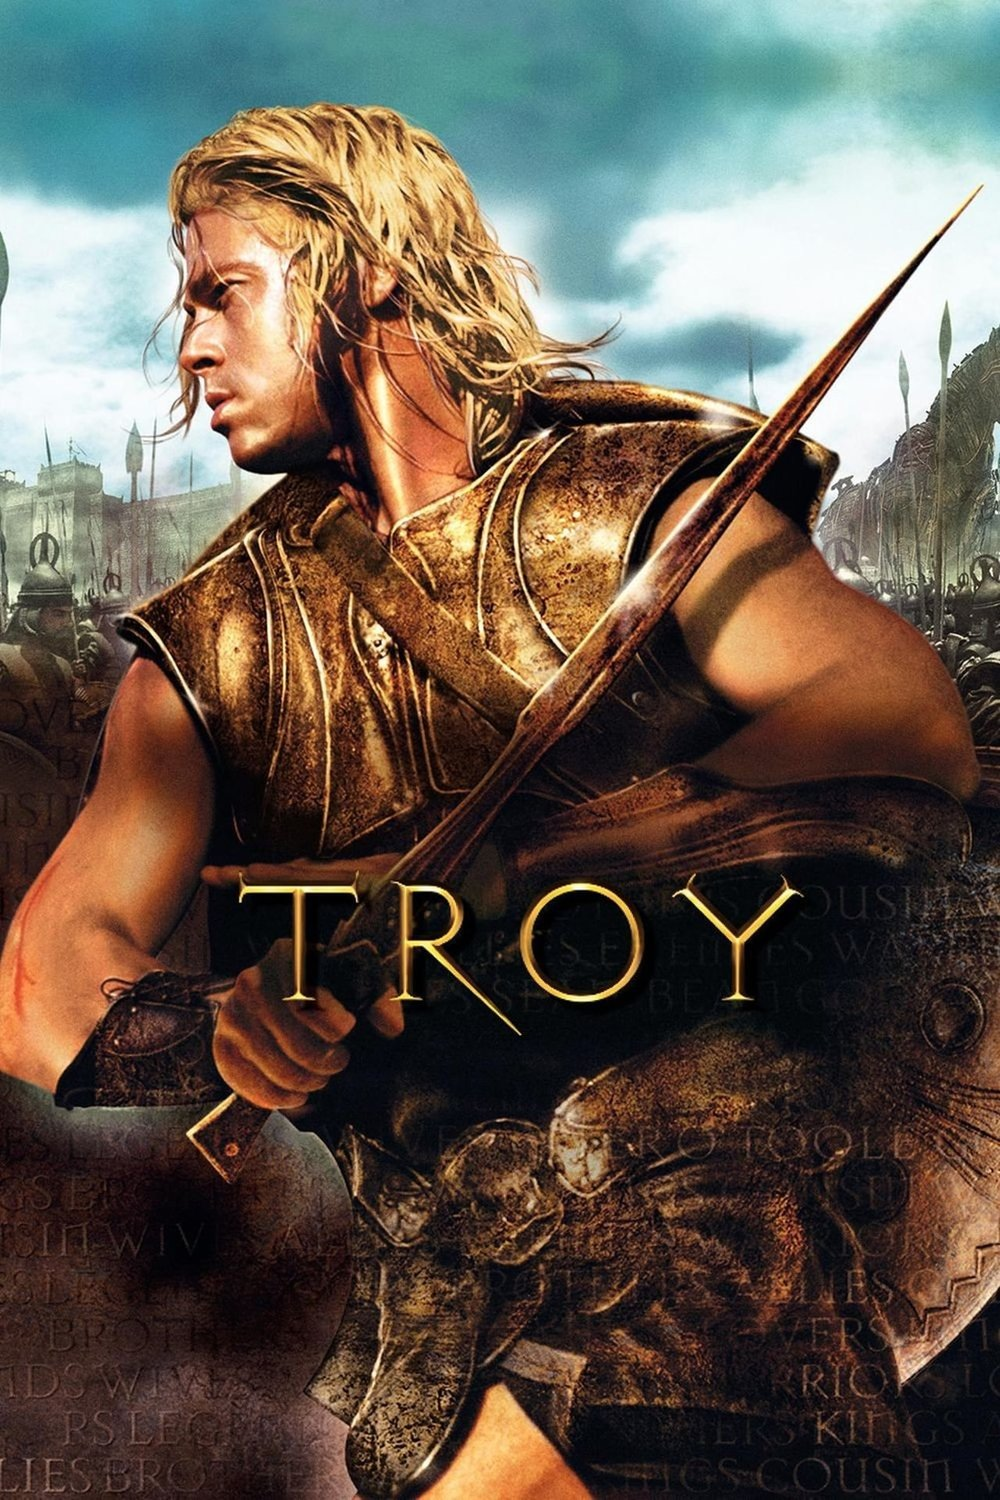 Troy by Wolfgang Petersen